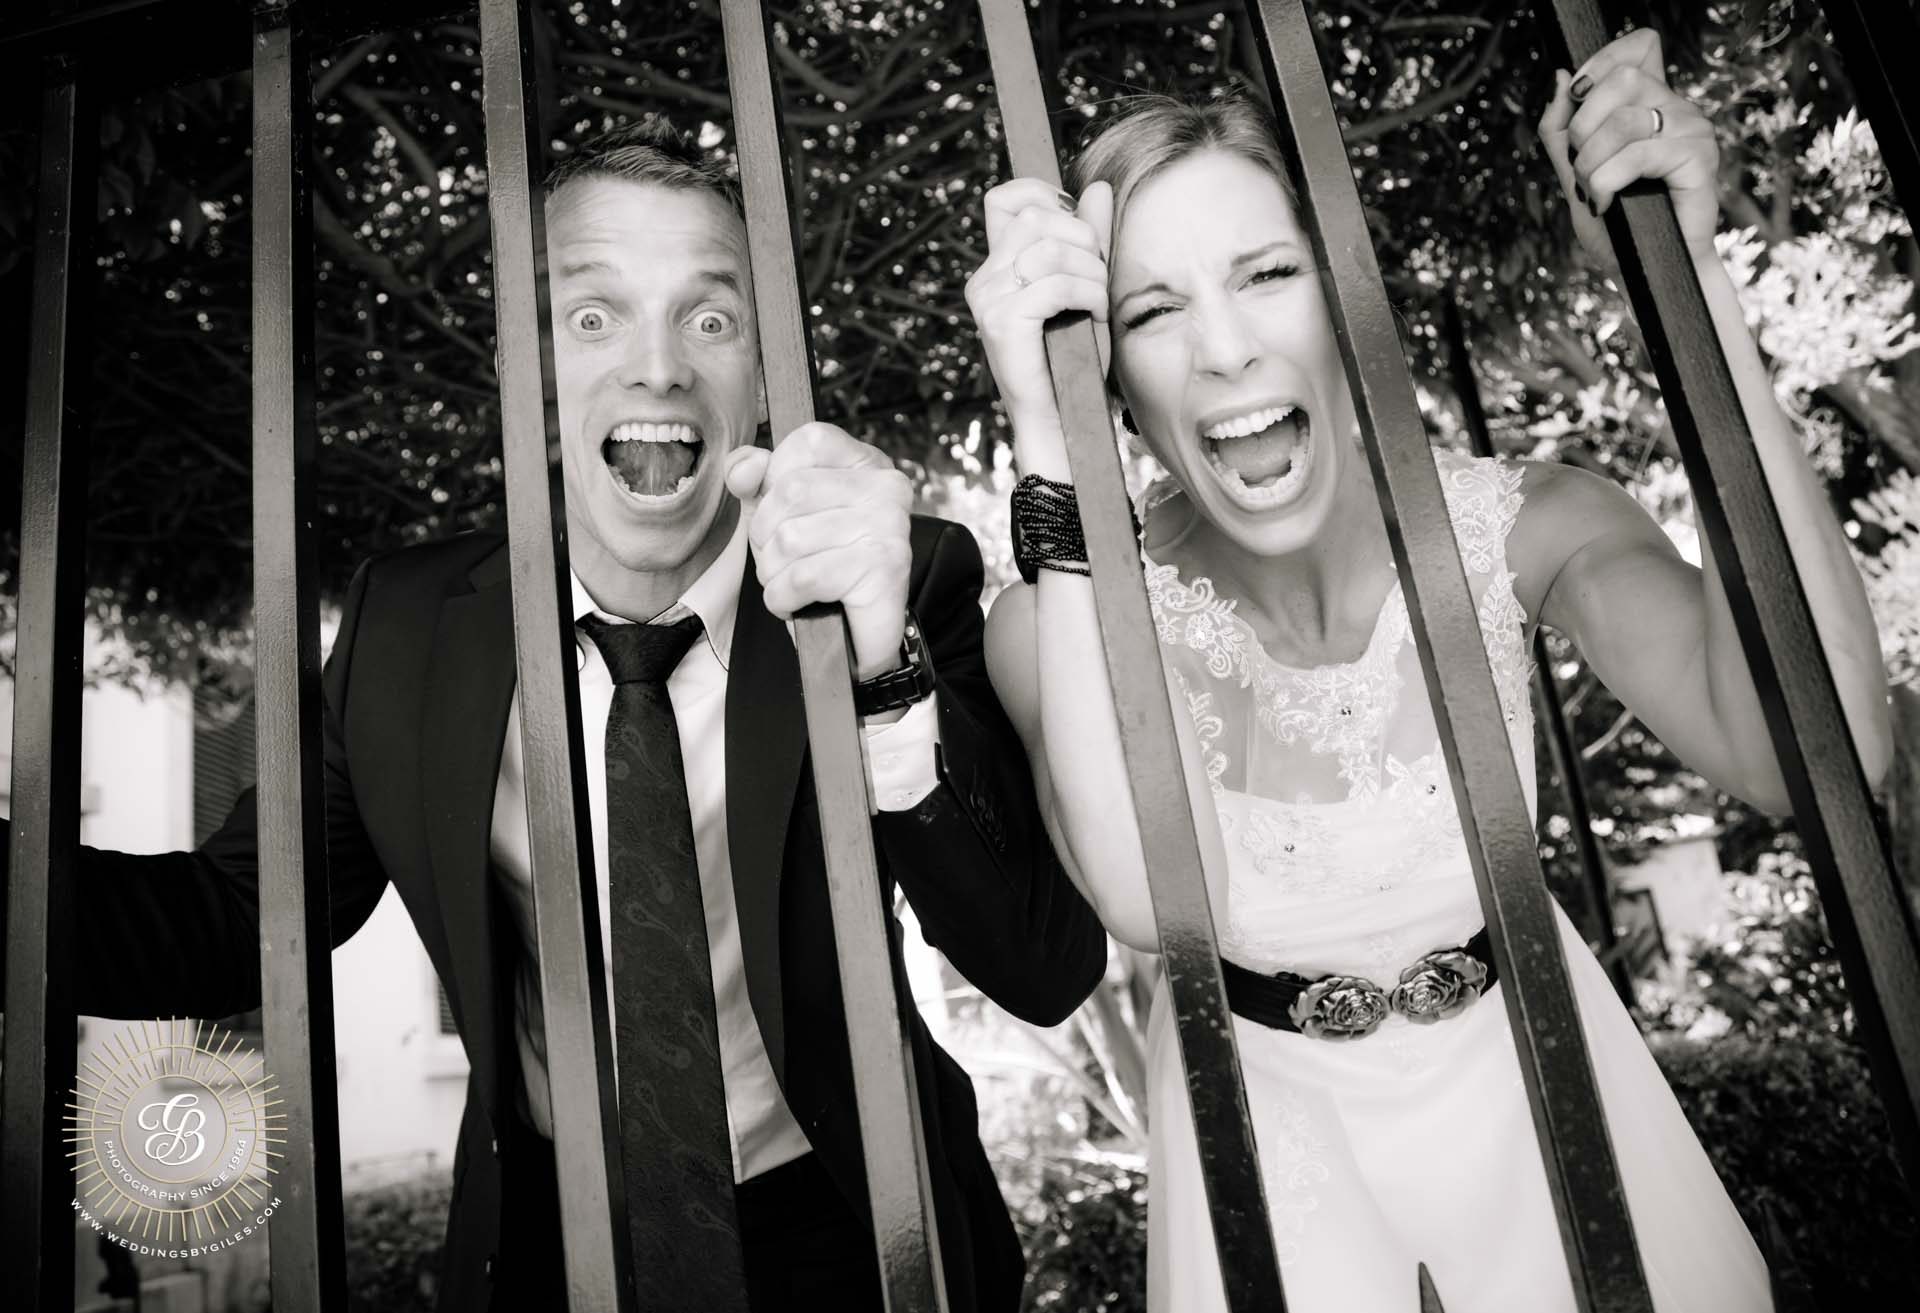 newlyweds behind bars